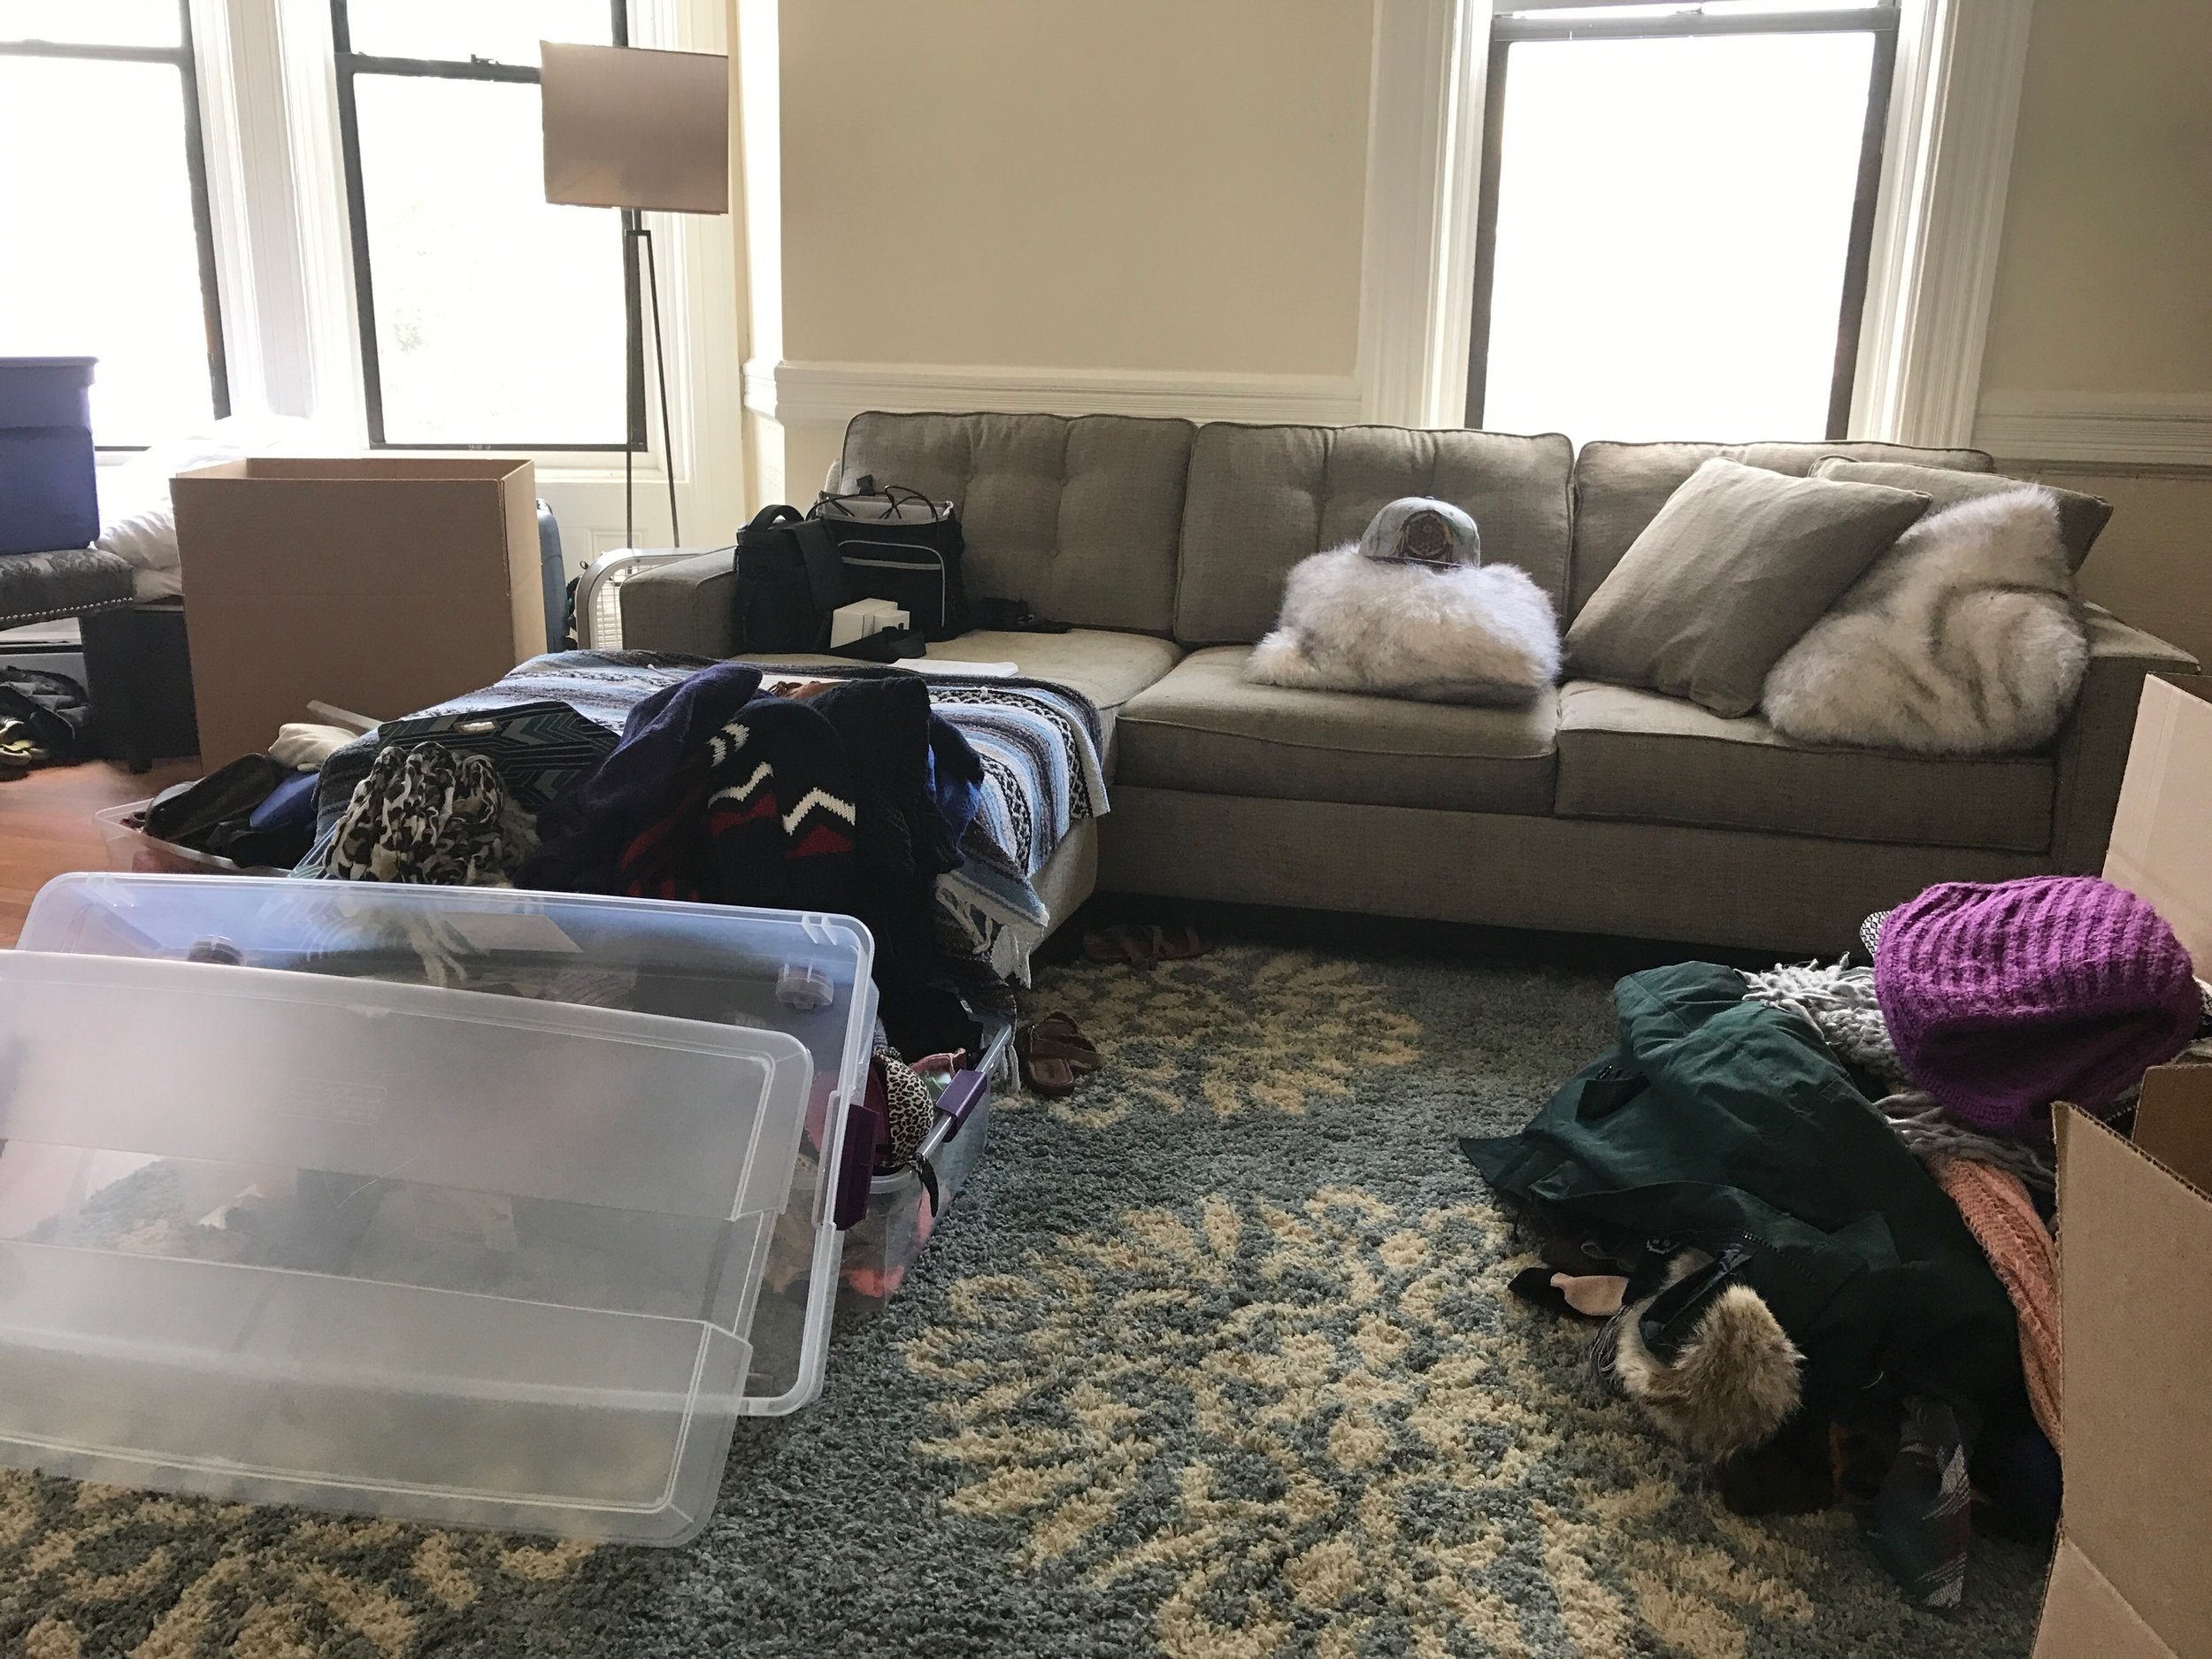 Packing, Planning, and More Packing: A photo of our living room at the present moment.